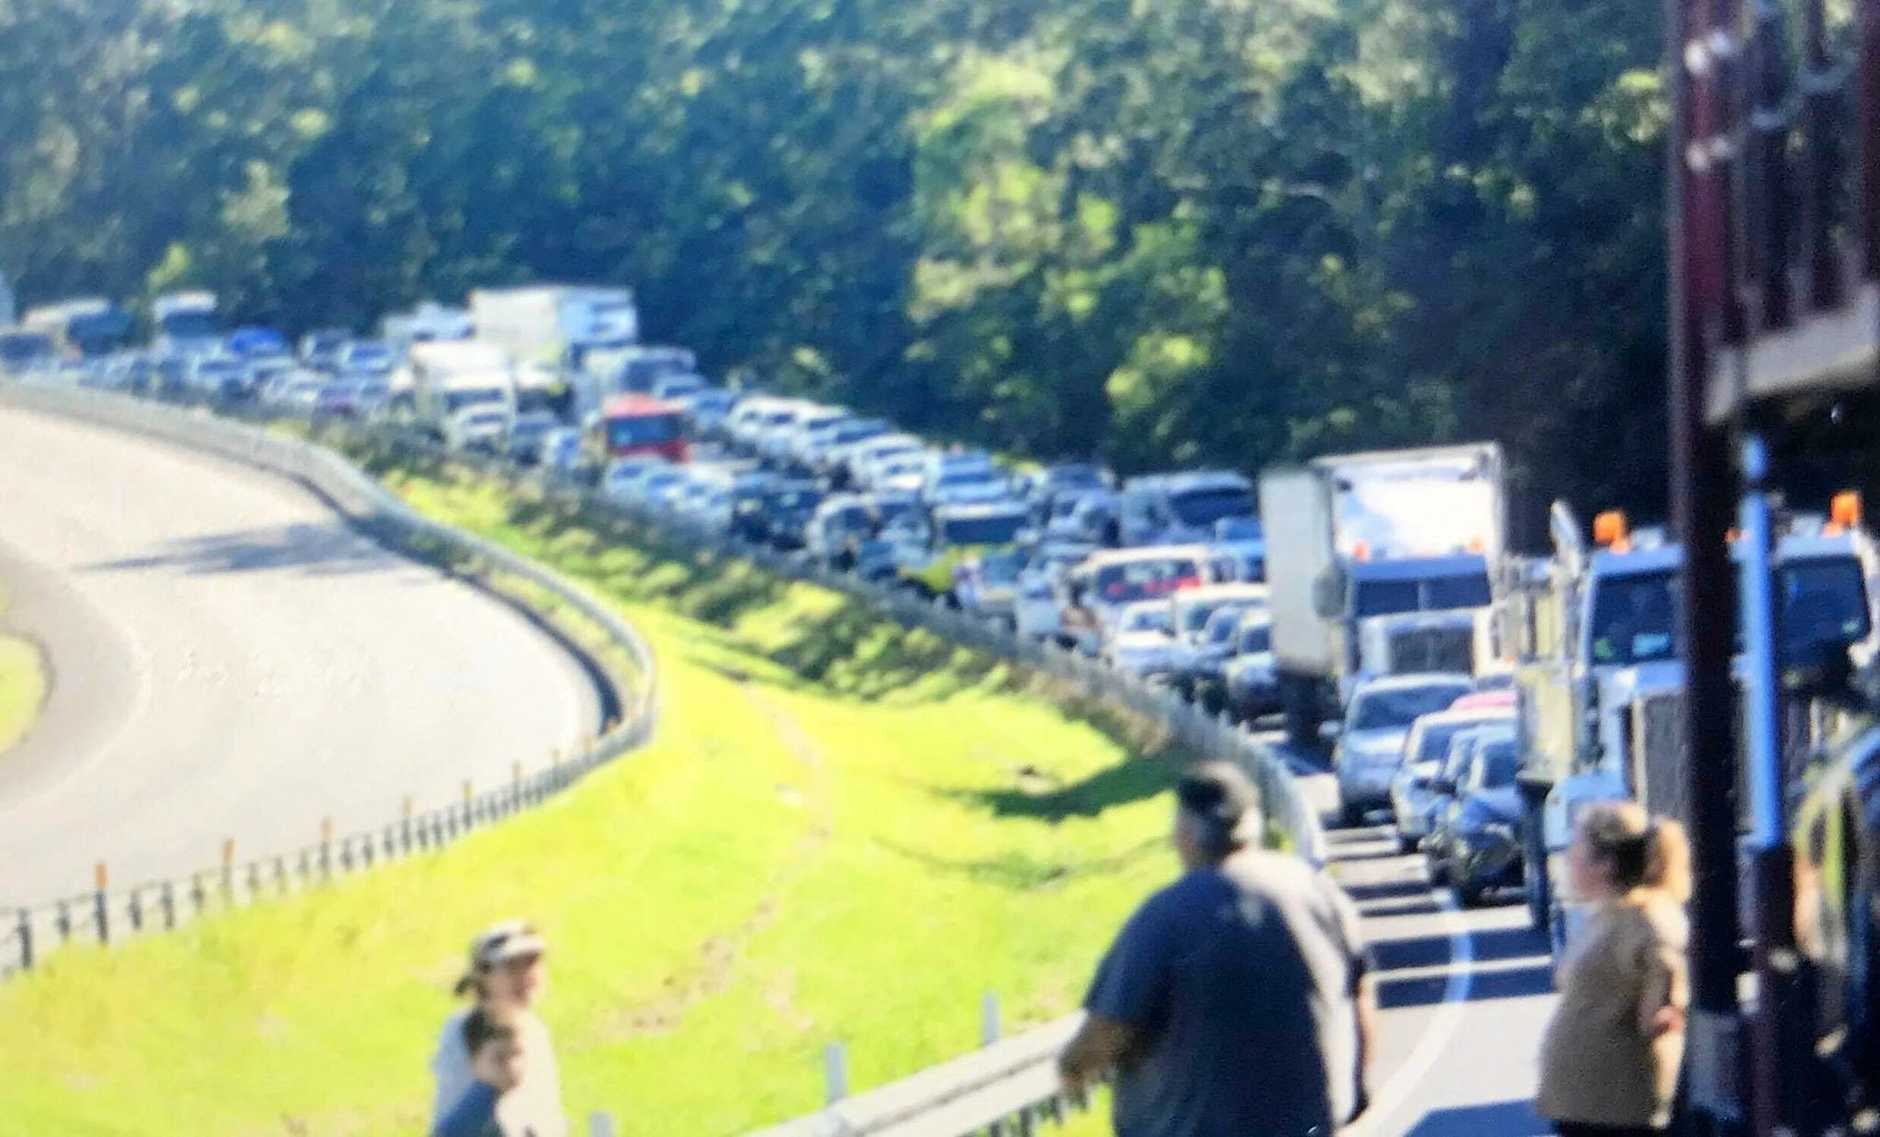 The aftermath of a high speed chase on the Bruce Highway.